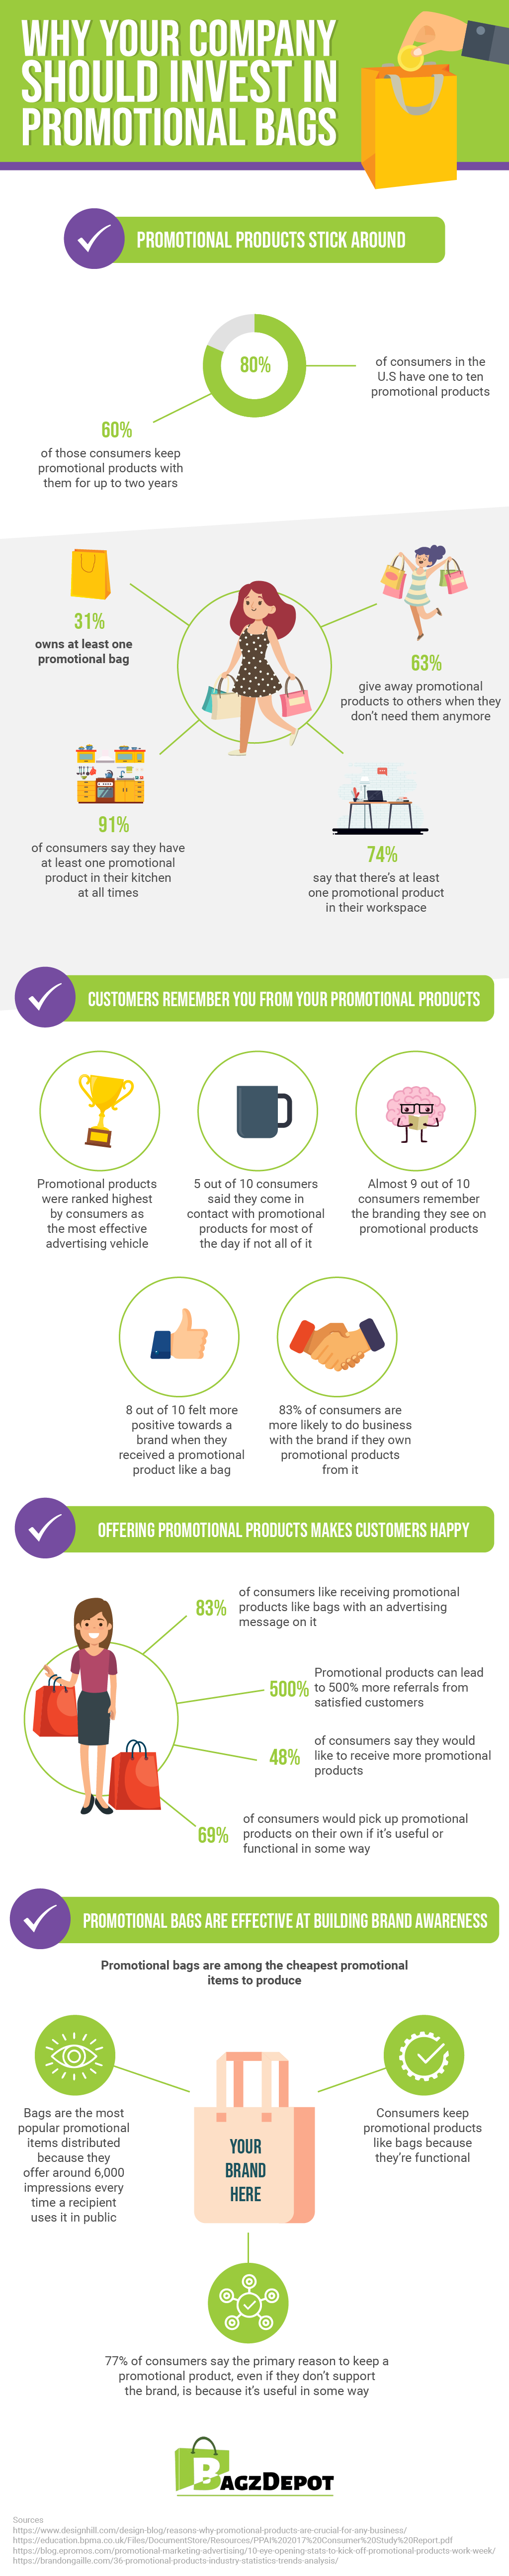 Why Your Company Should Invest in Promotional Bags